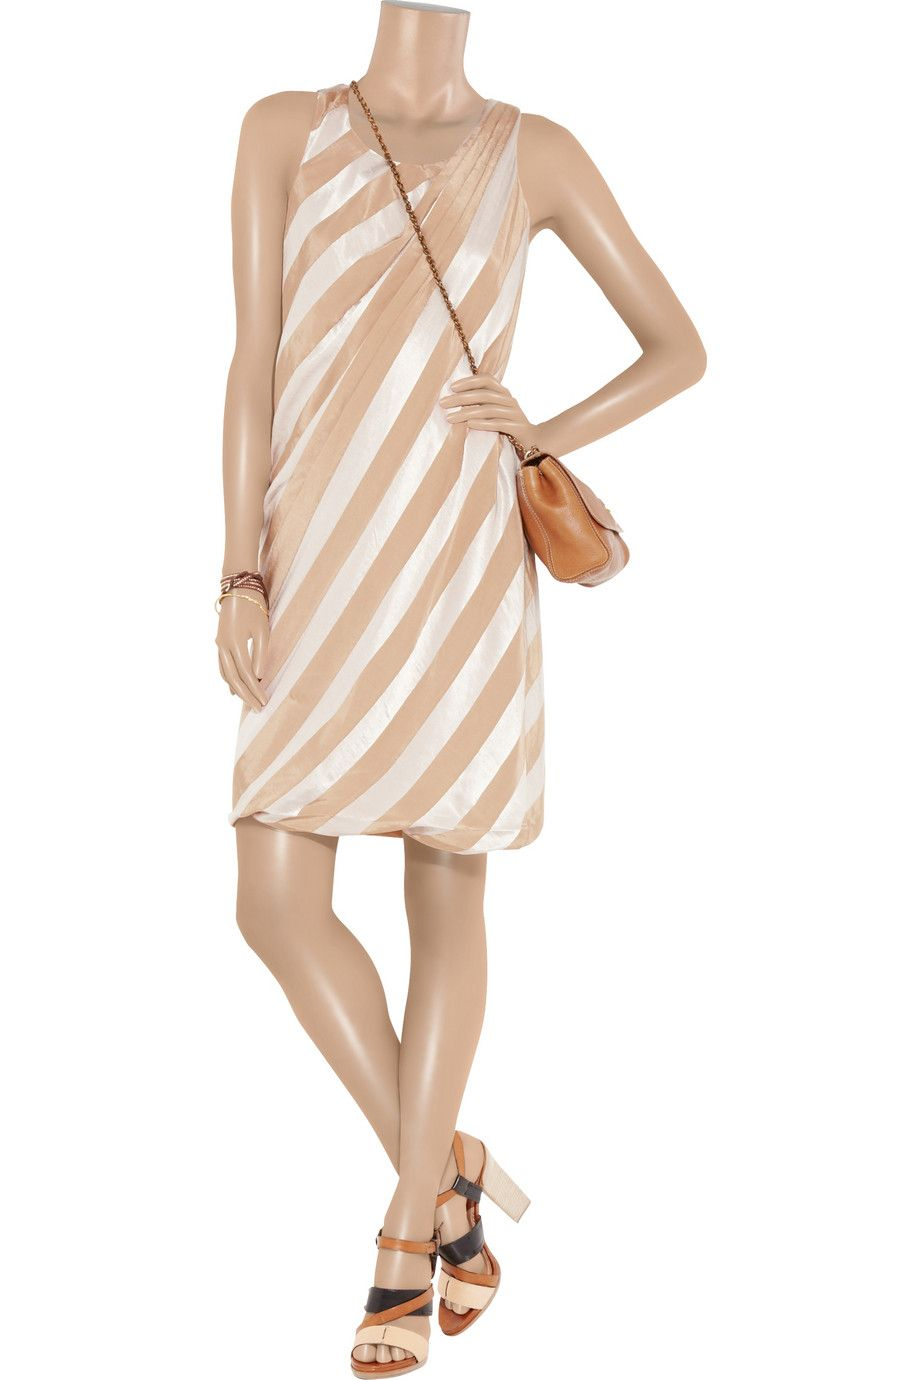 J.Crew Farrah striped satin dress - 76% Off Now at THE OUTNET